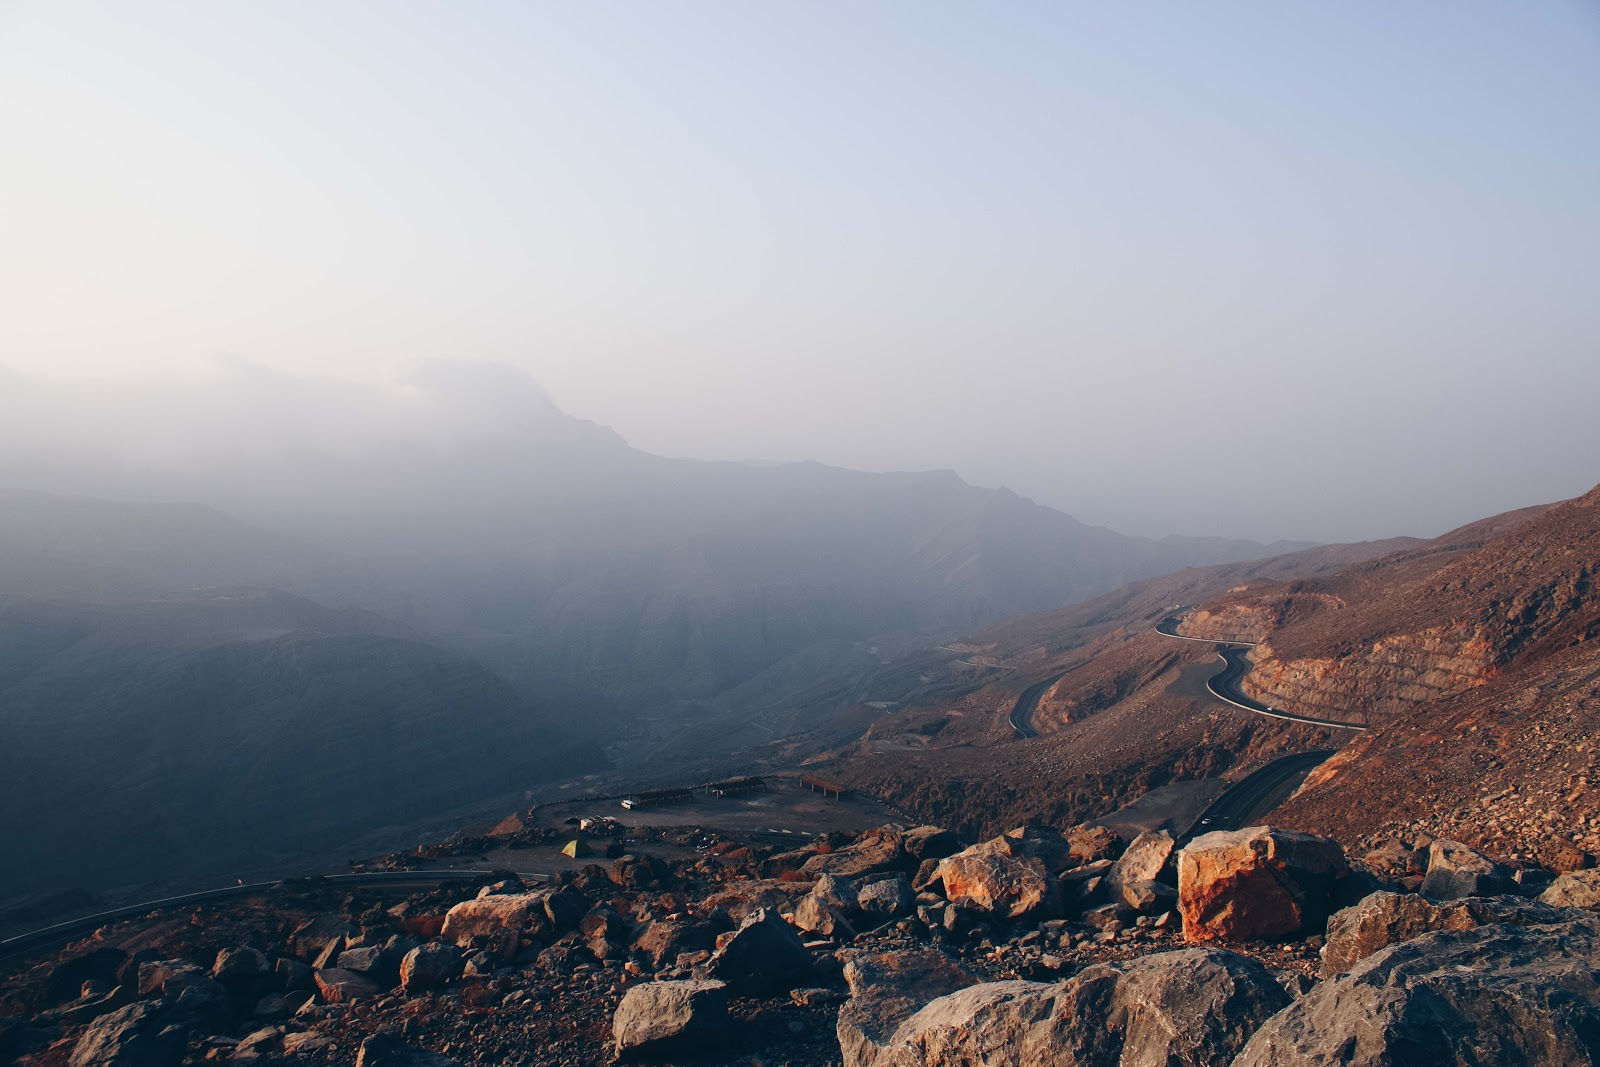 Jebel Jais mountain top photo